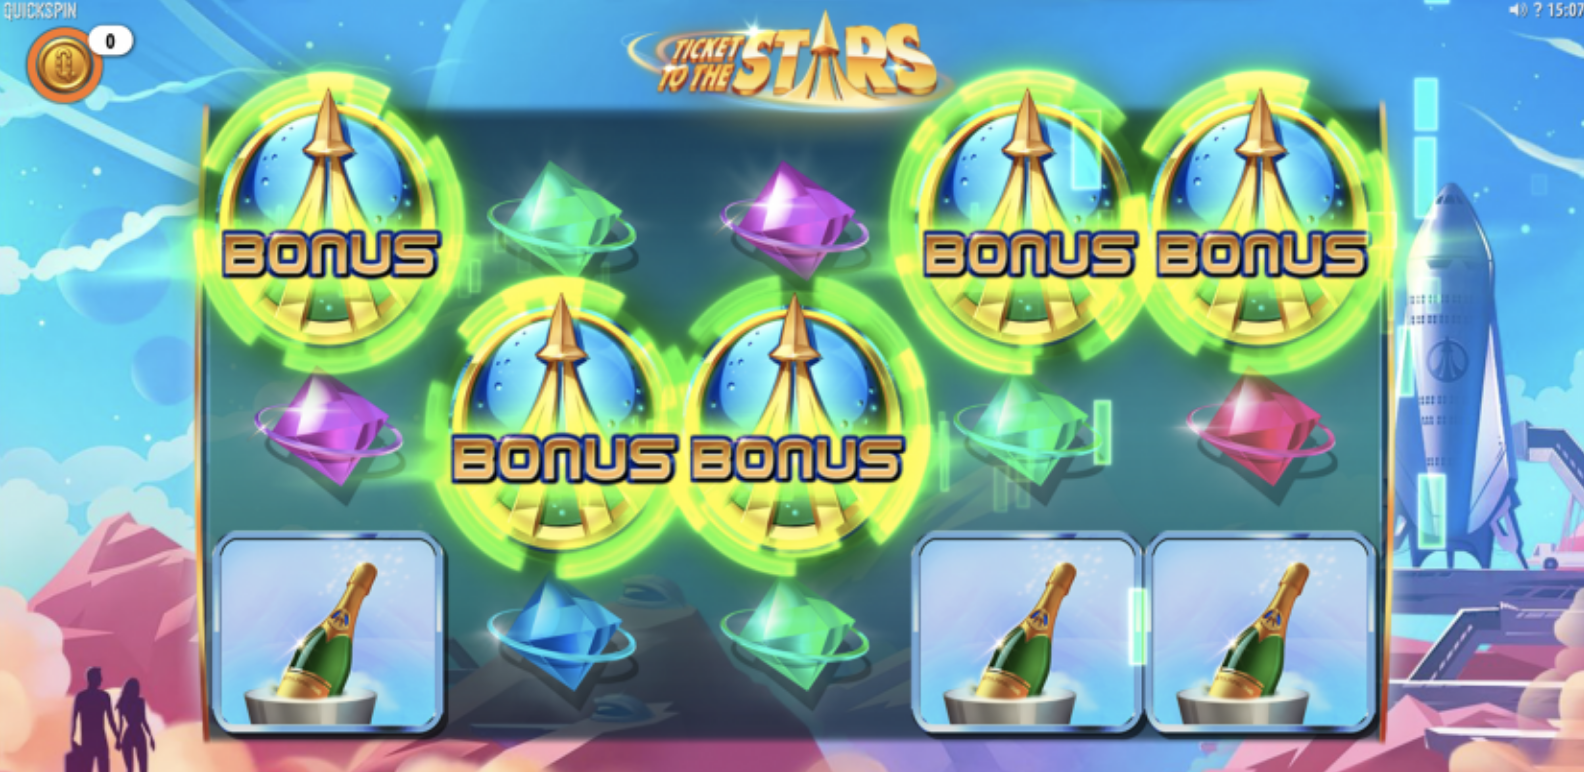 ticket to the stars slot screen shot